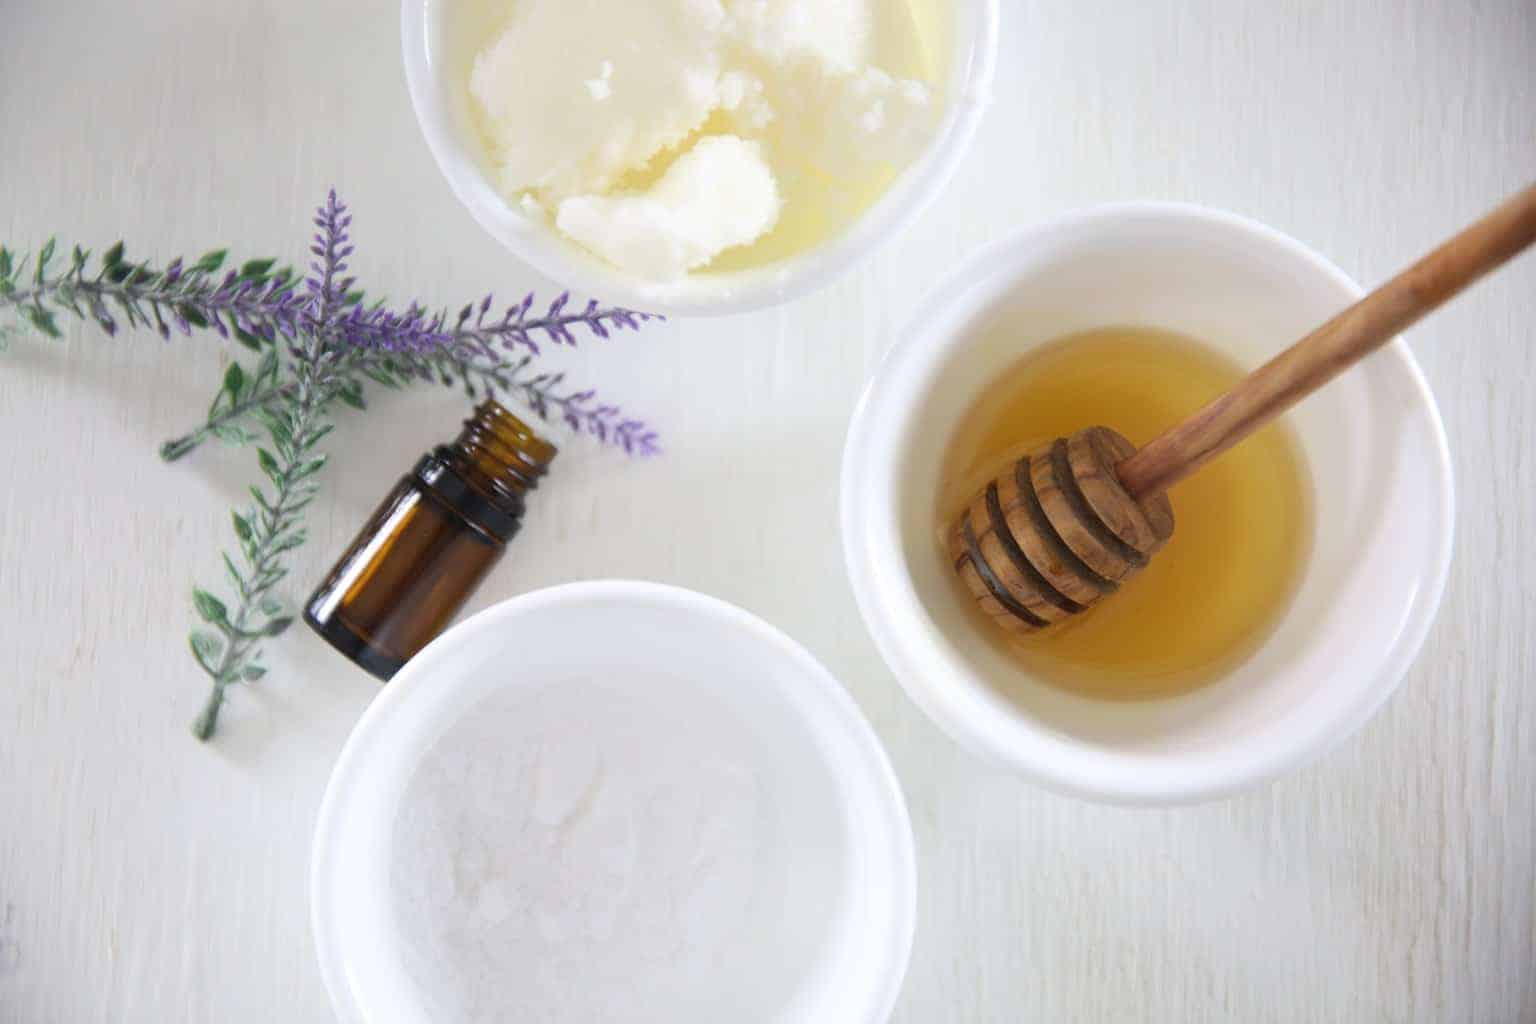 Learn how to make an all natural face wash for sensitive skin using coconut oil, honey, and lavender essential oil.